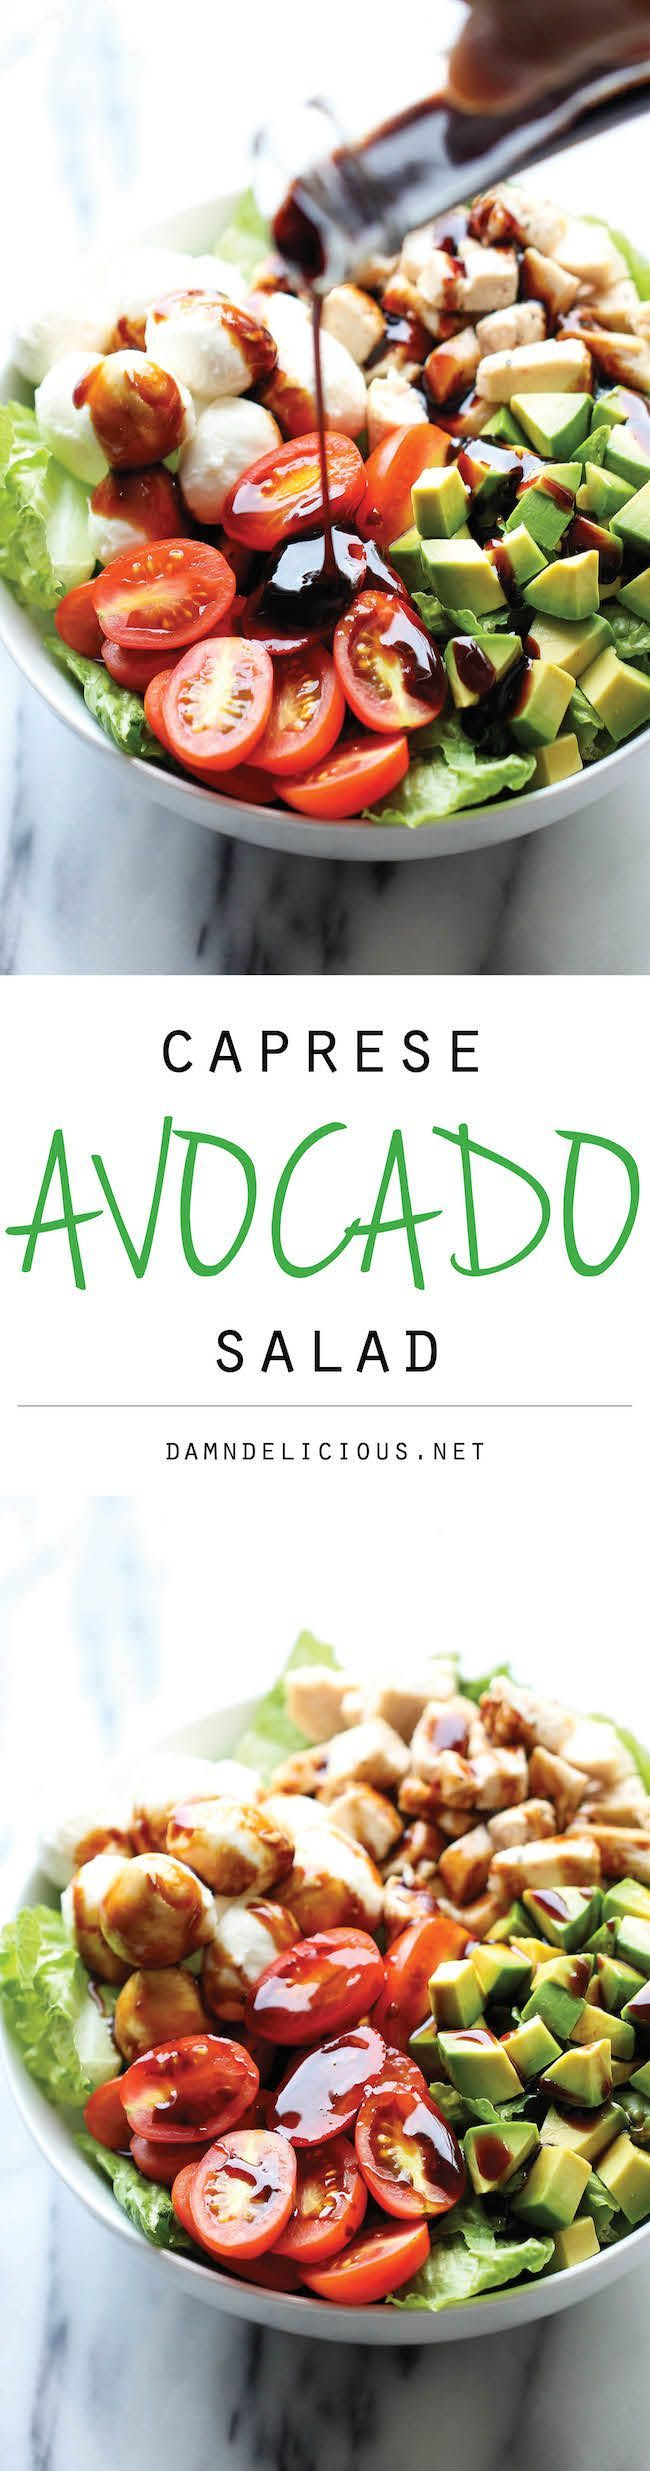 Caprese avocado salad lunch